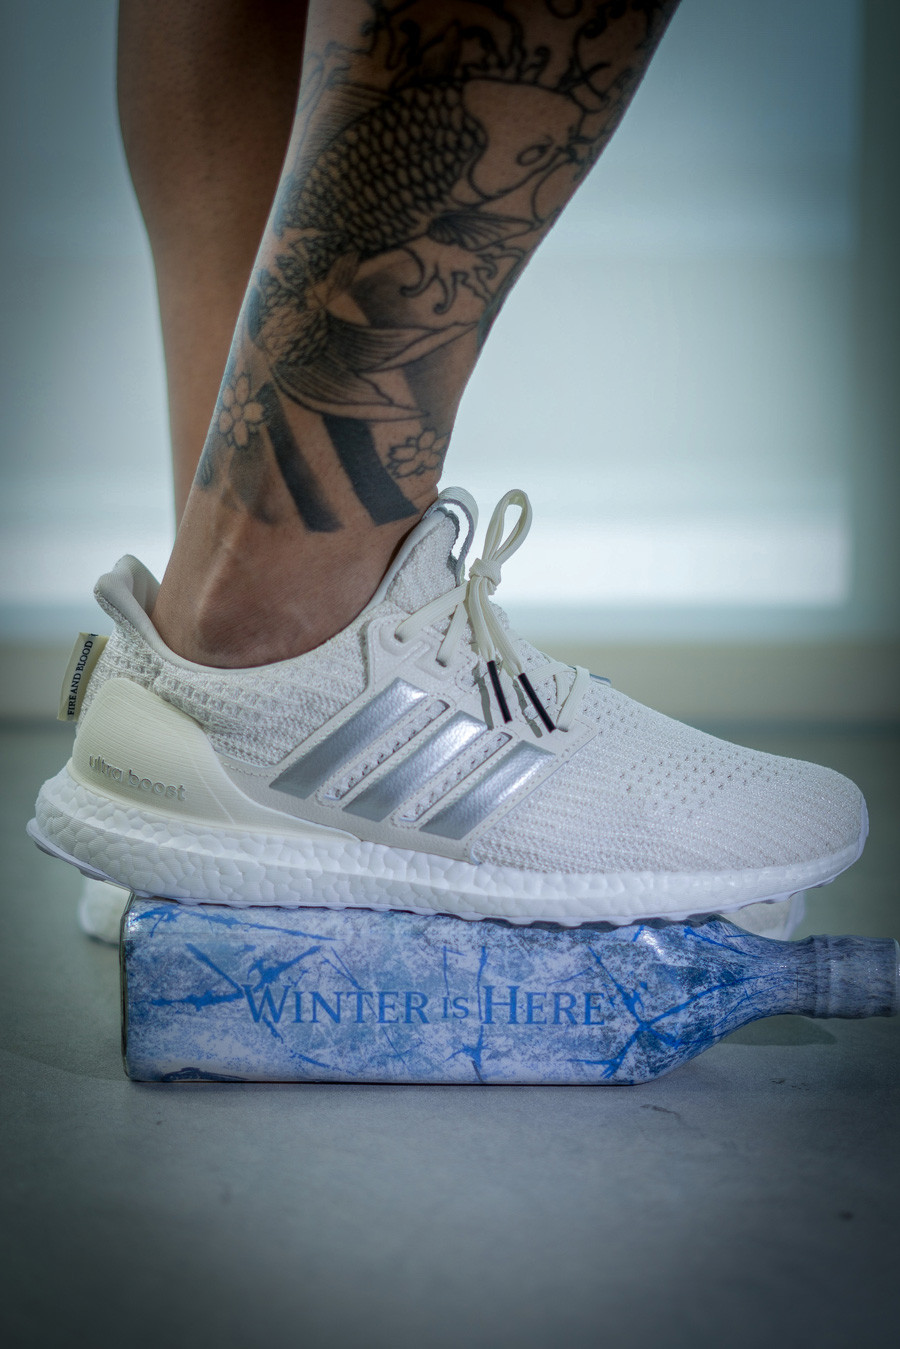 Game of Thrones x adidas UltraBOOST On